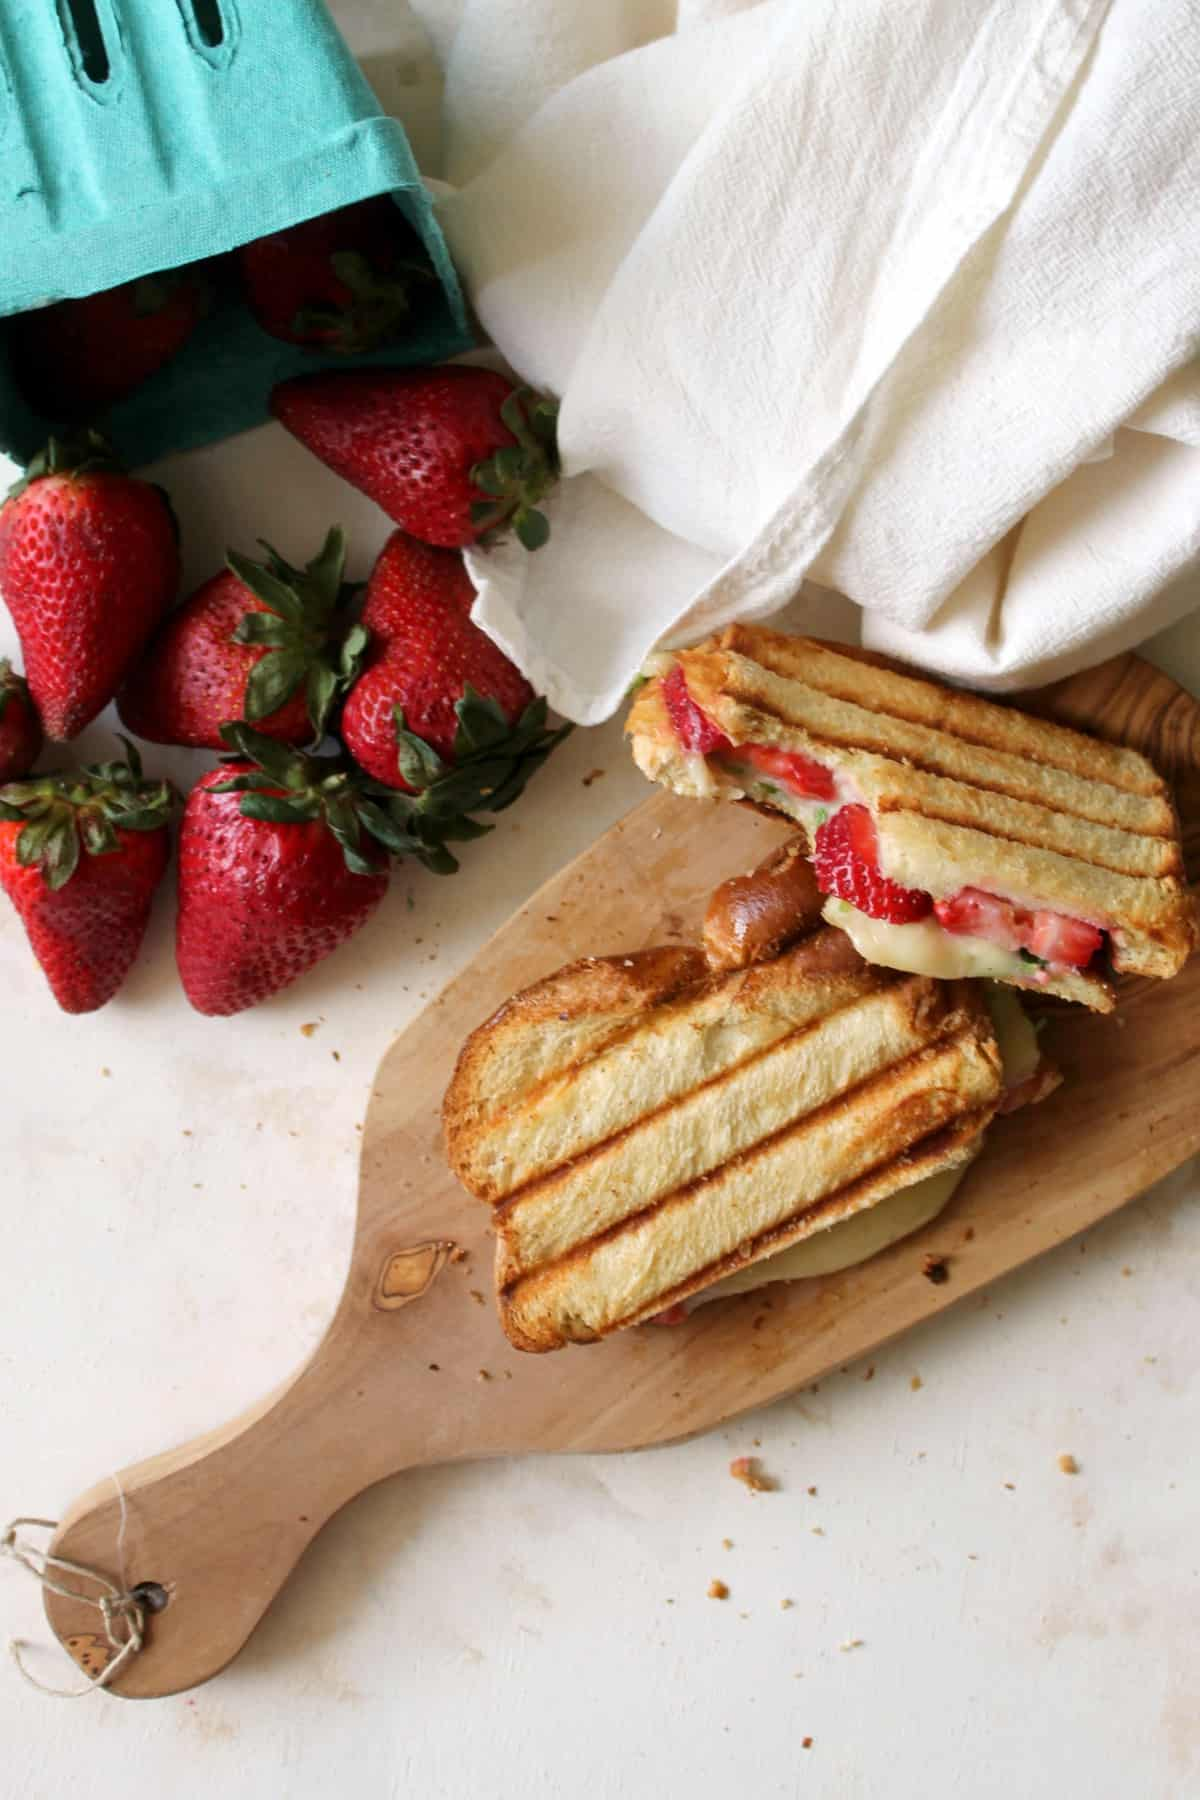 Strawberry, Brie & Arugula Paninis are a simple but delicious way to enjoy ripe, juicy strawberries! A classic comfort food with a springtime twist!